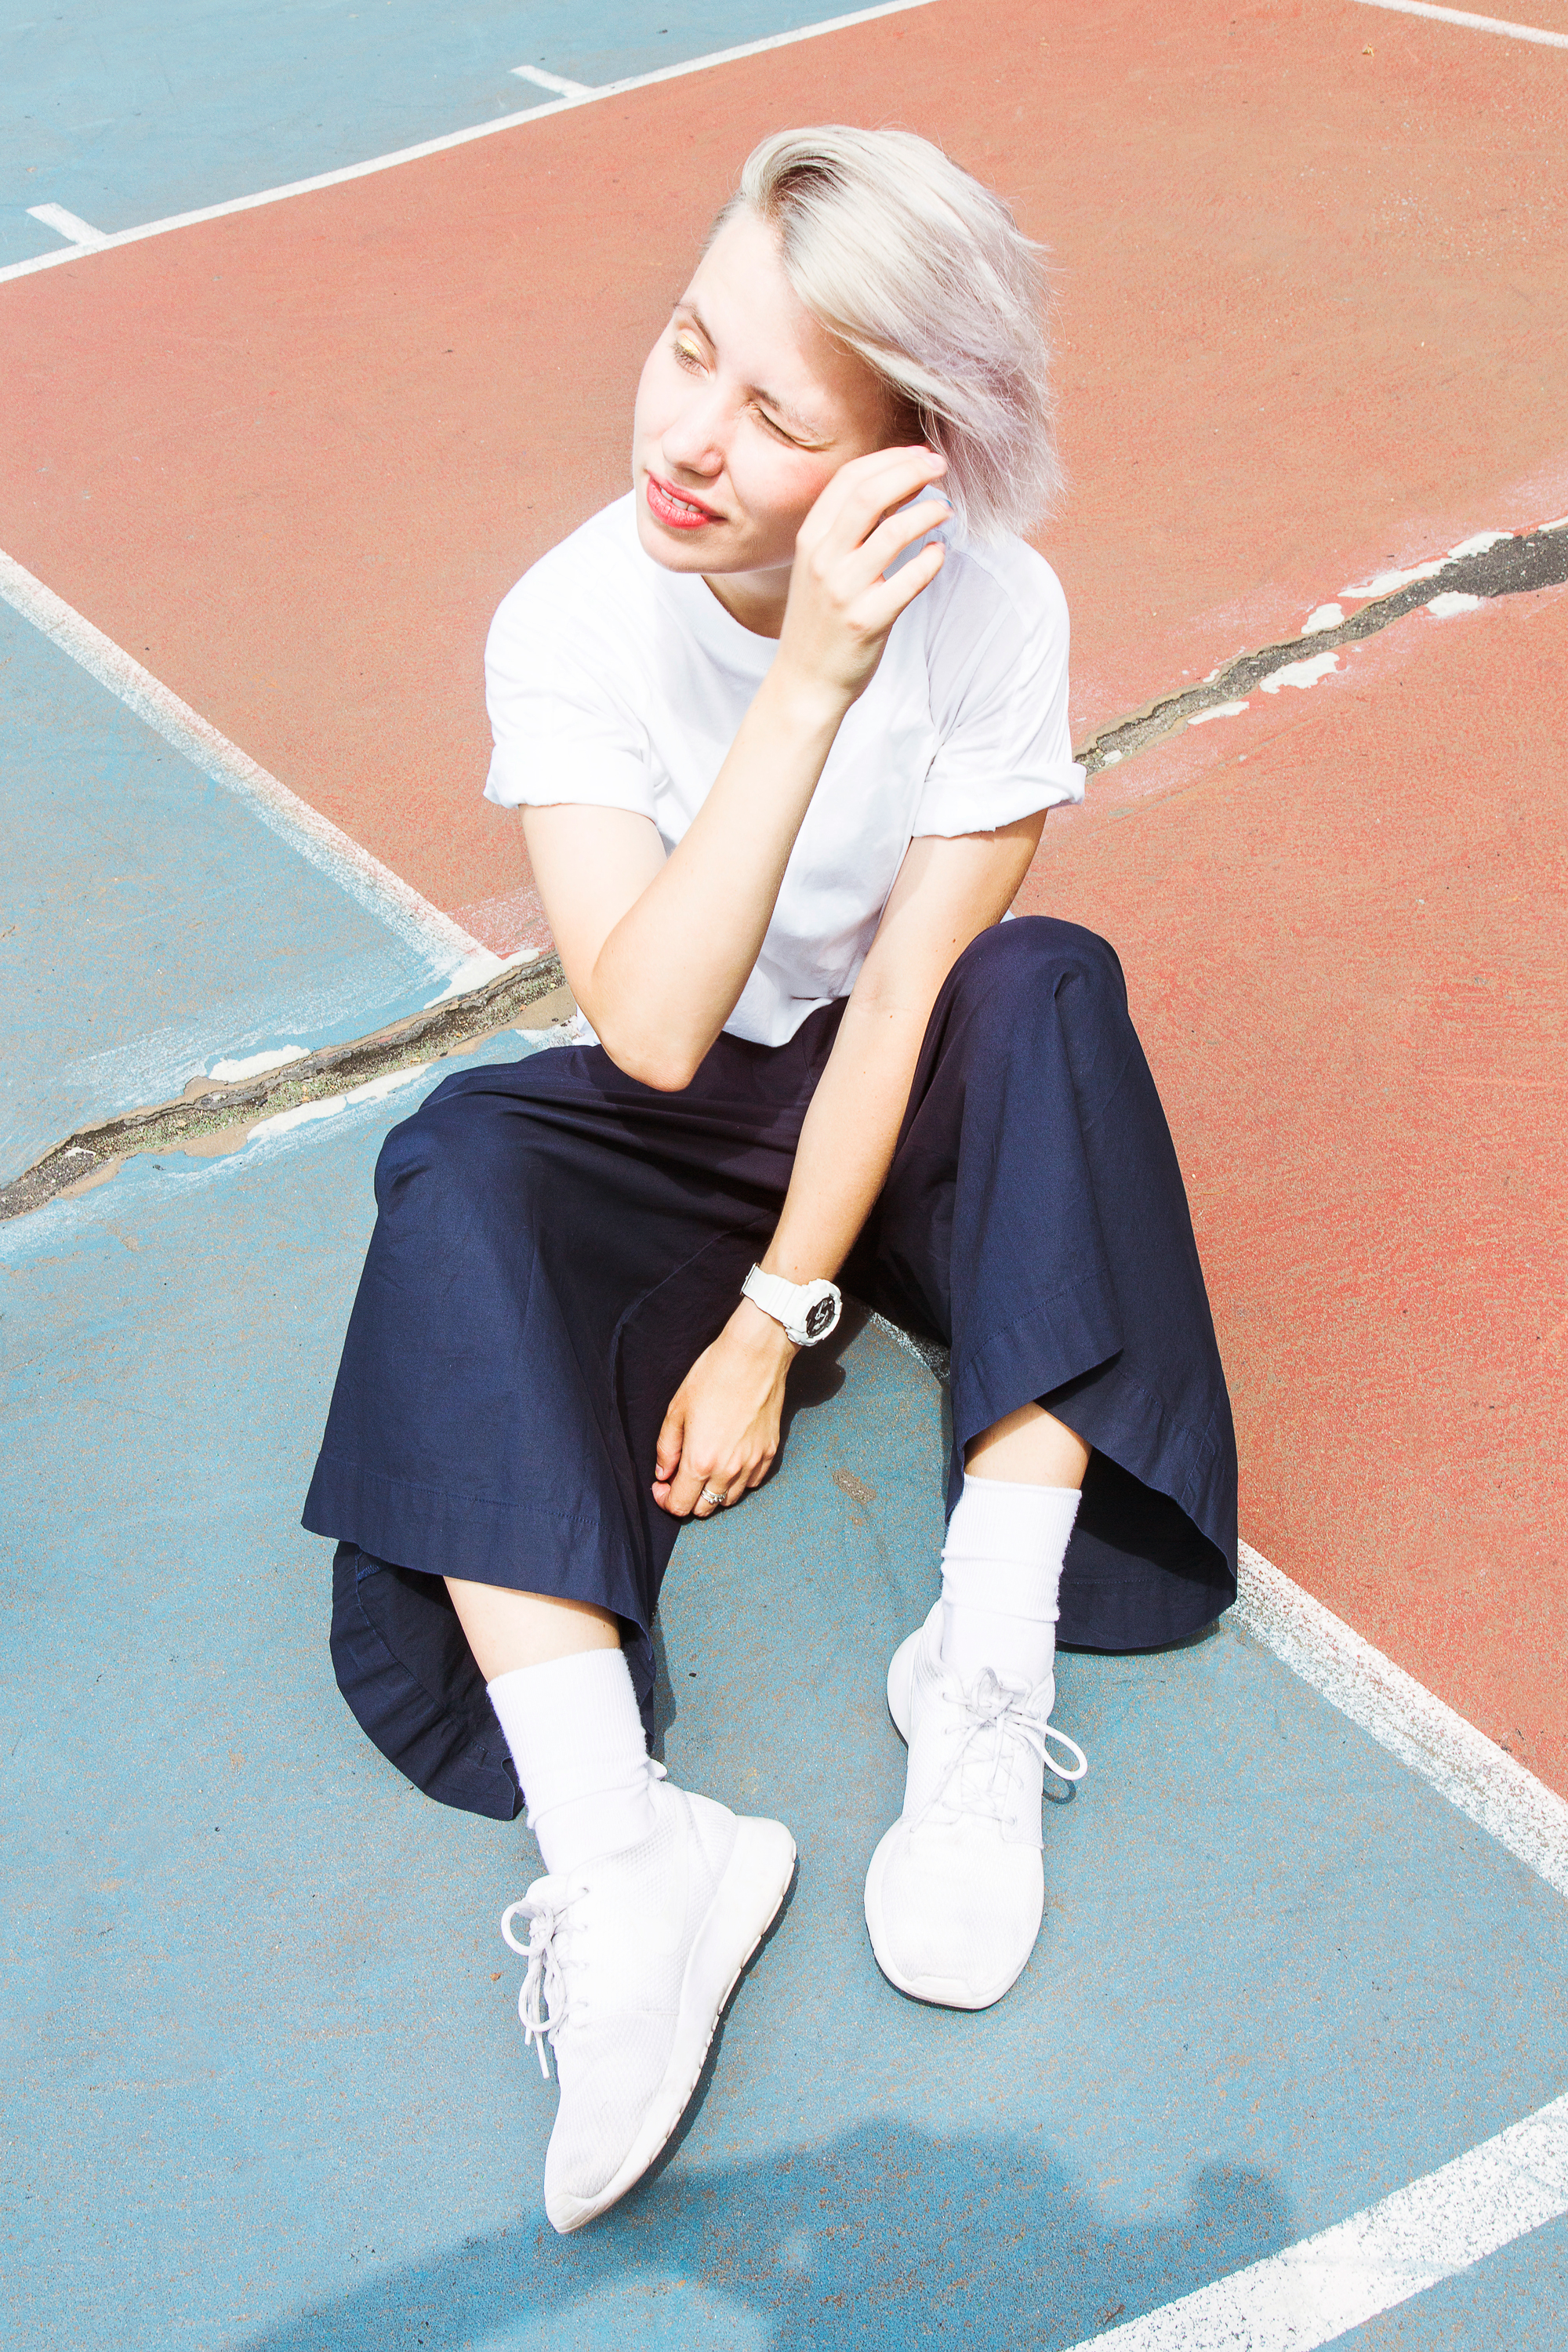 Super Nova - Welcome to the world of experimental pop luminary Kate NV.Fresh Faces